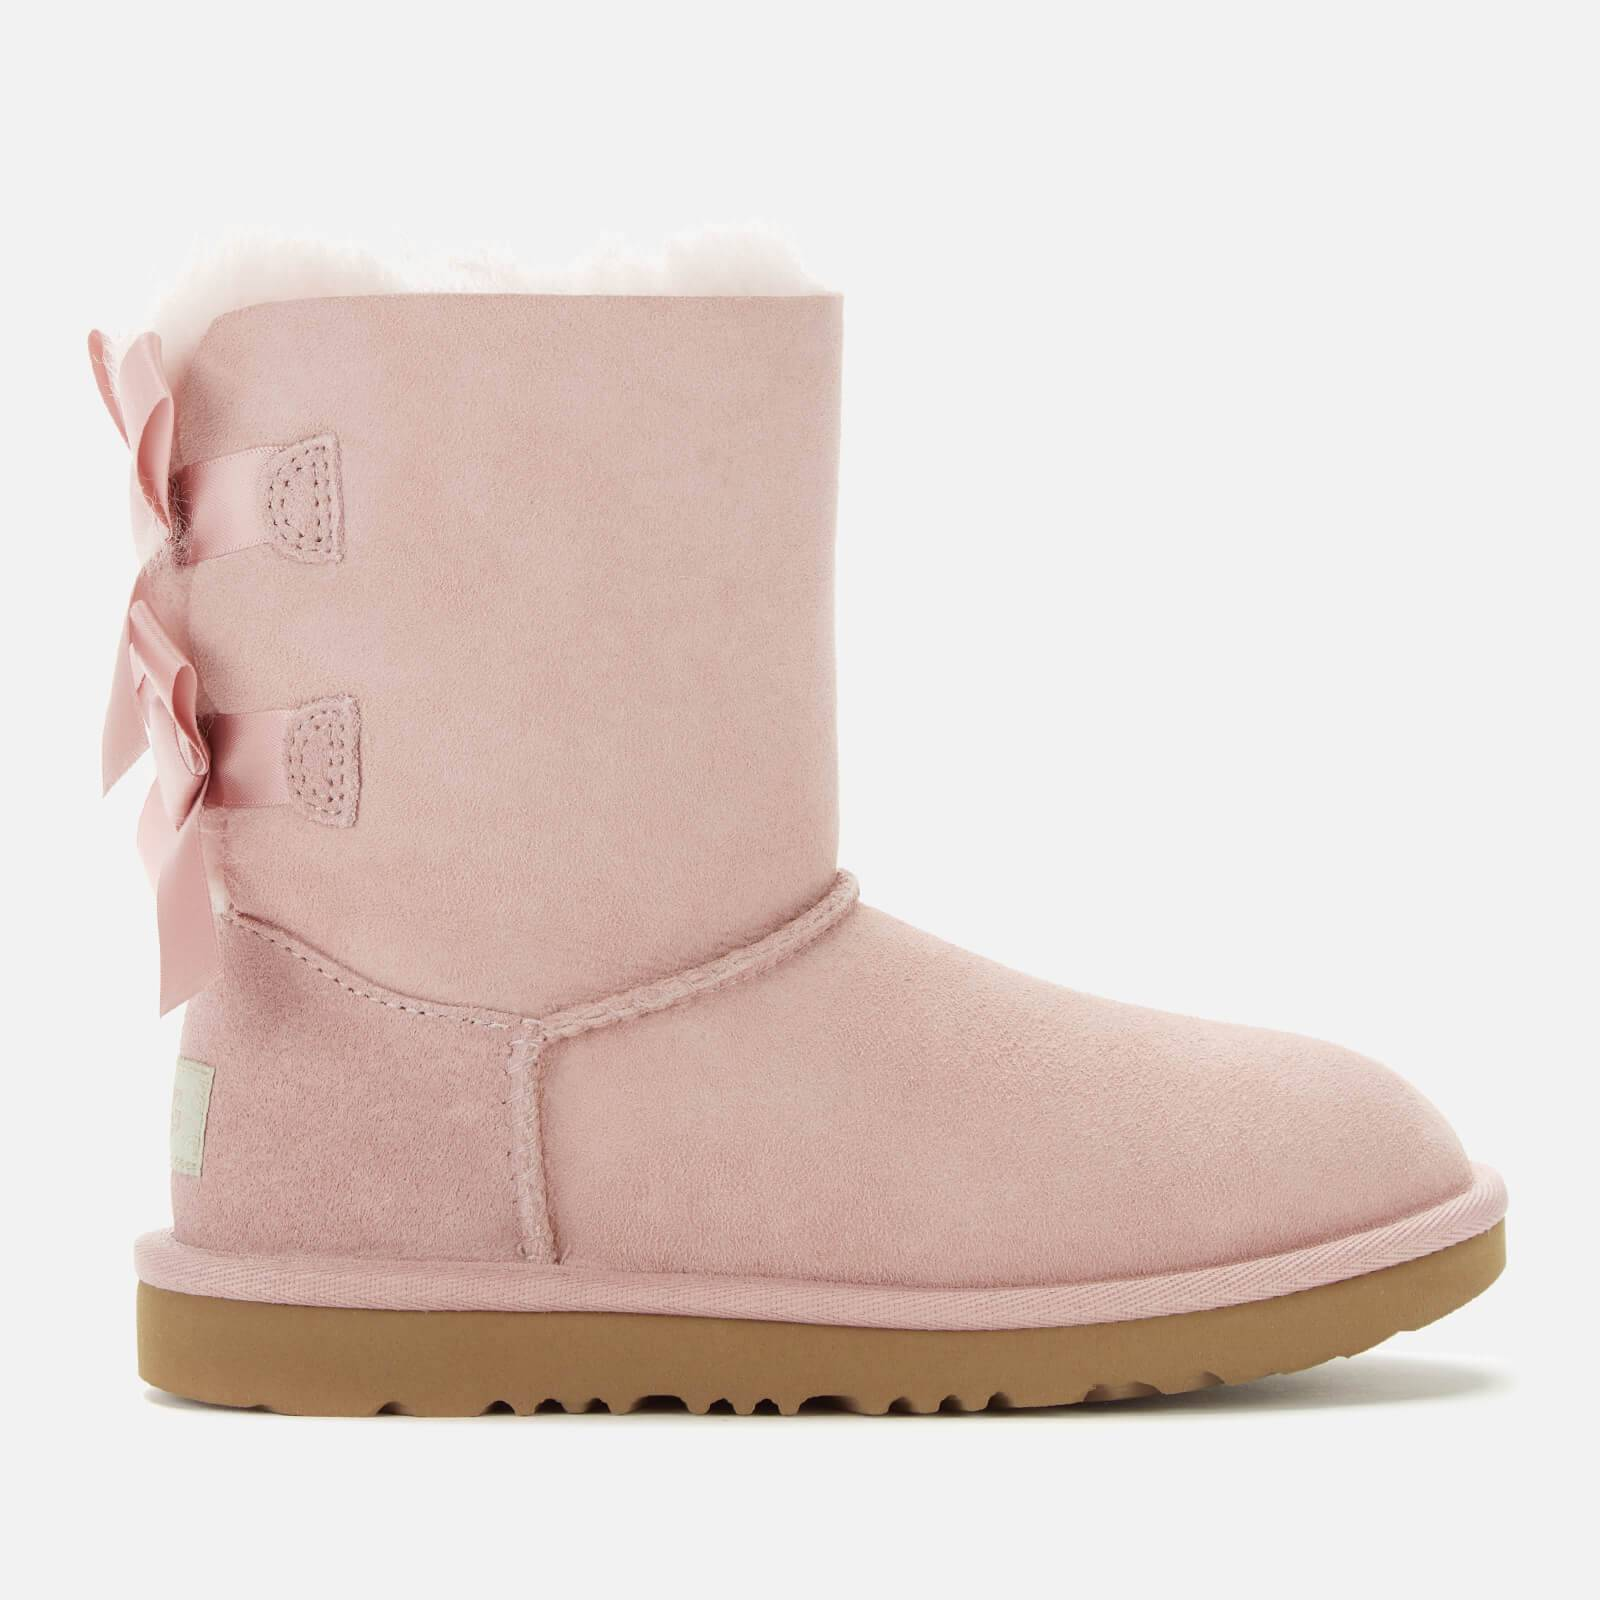 UGG Kids' Bailey Bow II Lace Back Sheepskin Boots - Pink Crystal - UK 12 Kids